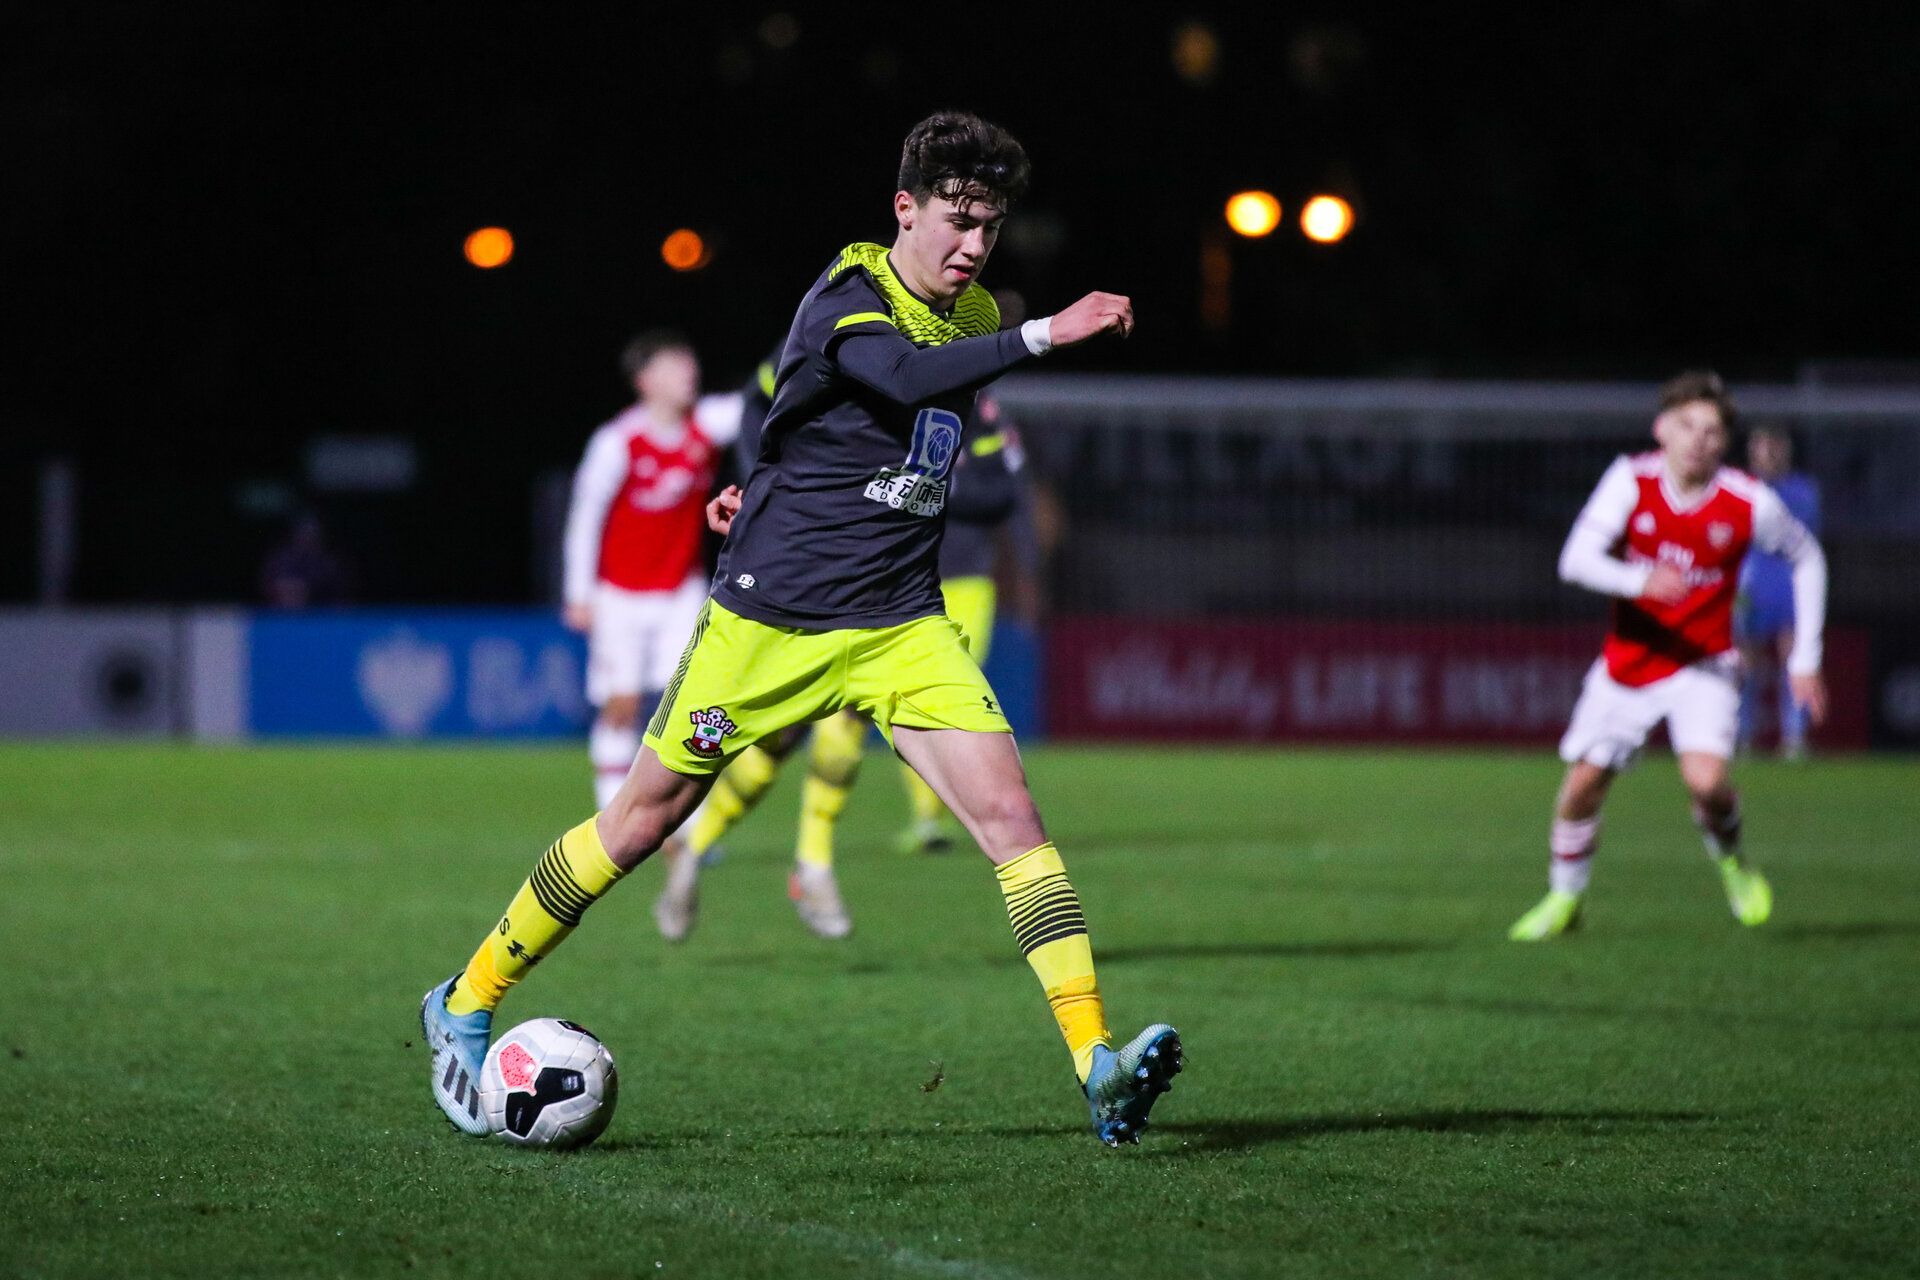 BOREHAMWOOD, ENGLAND - JANUARY 09: Marco Rus of Southampton FC in possession during the FA Youth Cup Fourth Round match between Arsenal U18s and Southampton FC U18s at Meadow Park on January 09, 2020 in Borehamwood, England